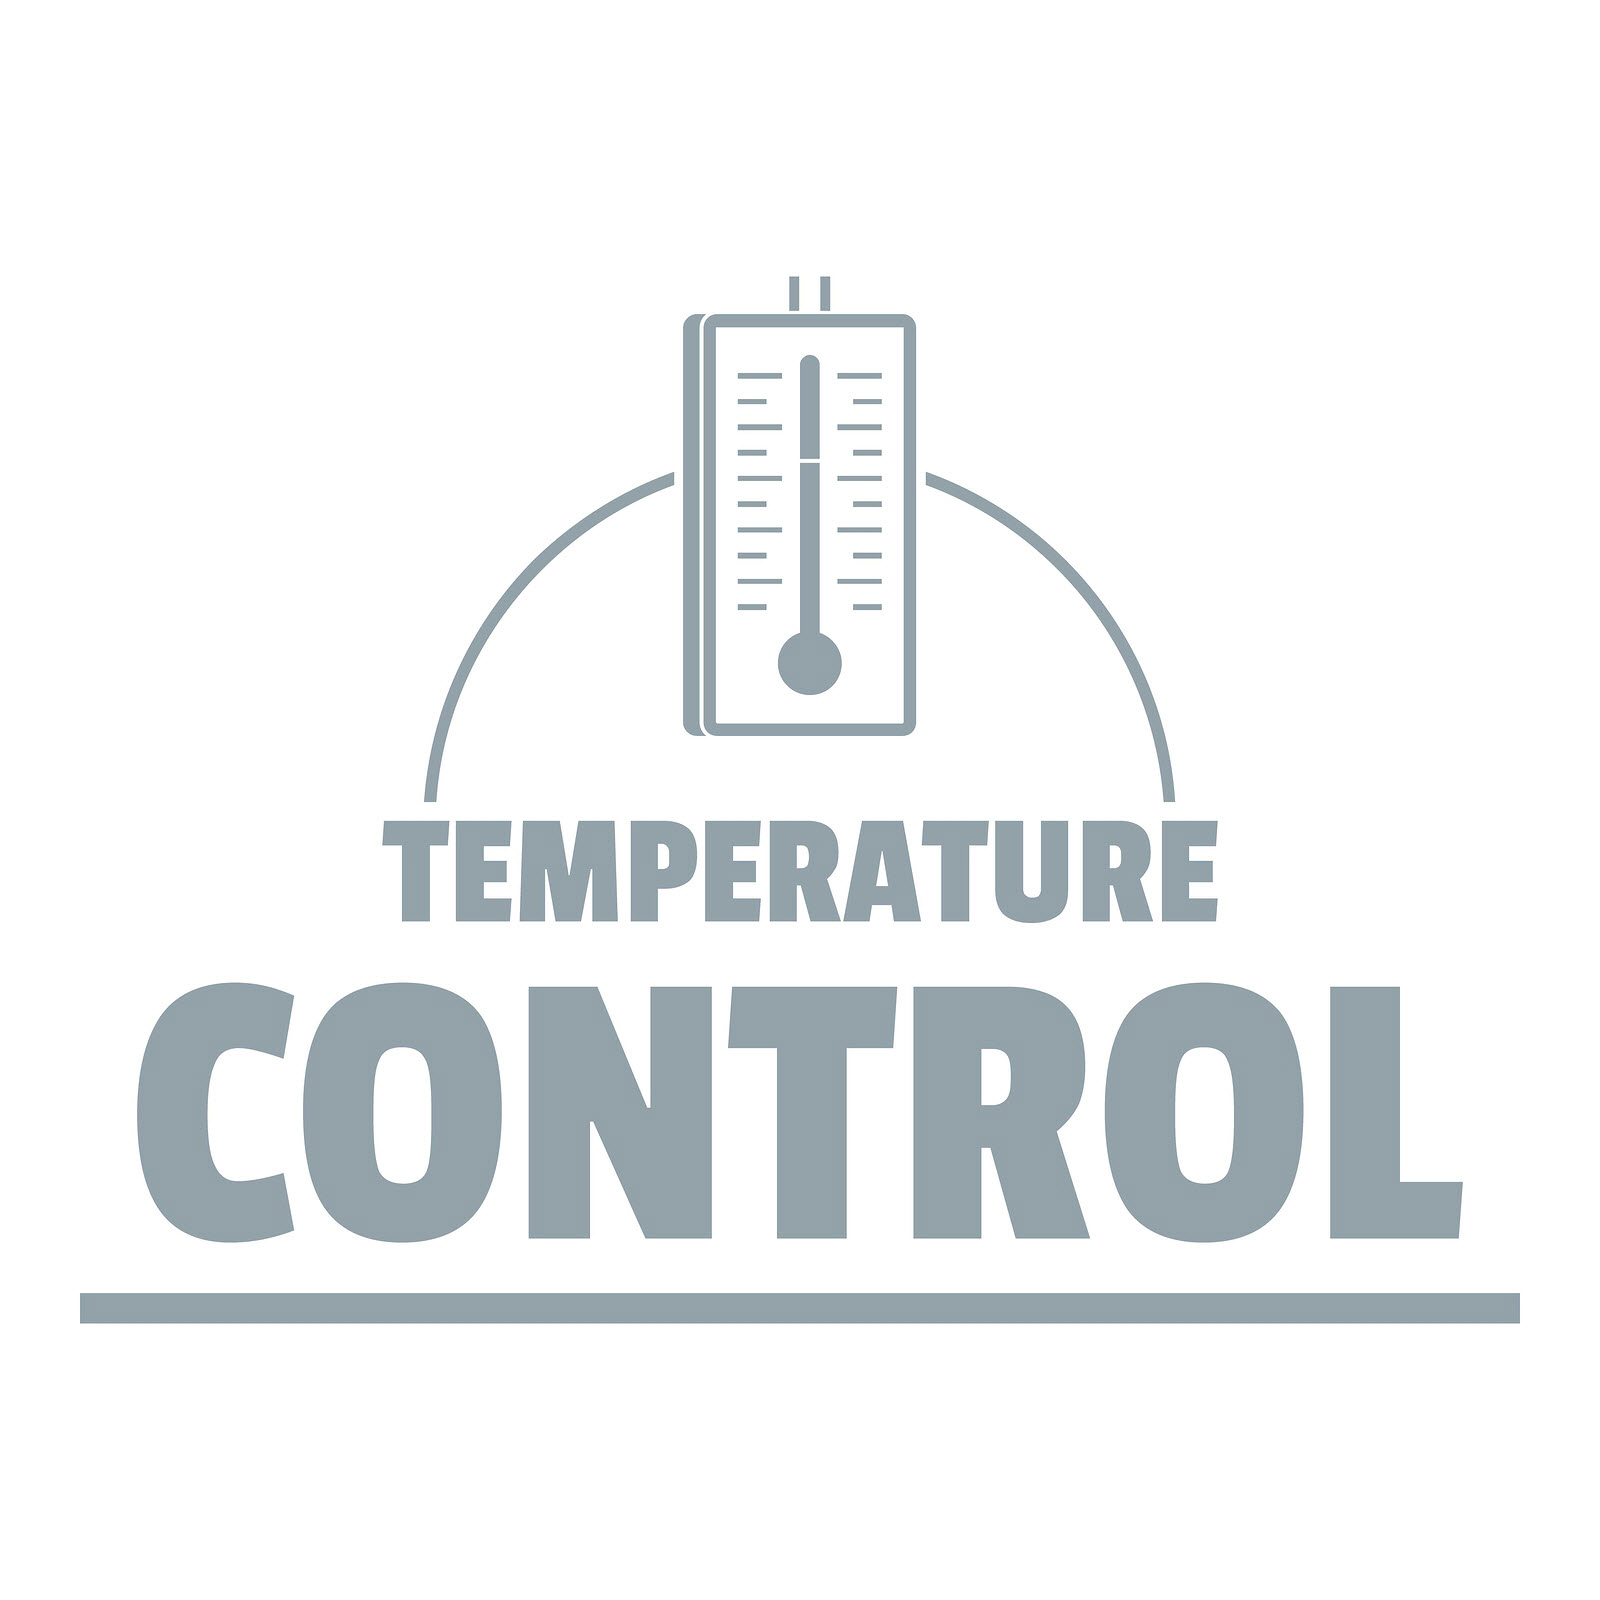 temperature-controlled warehouse